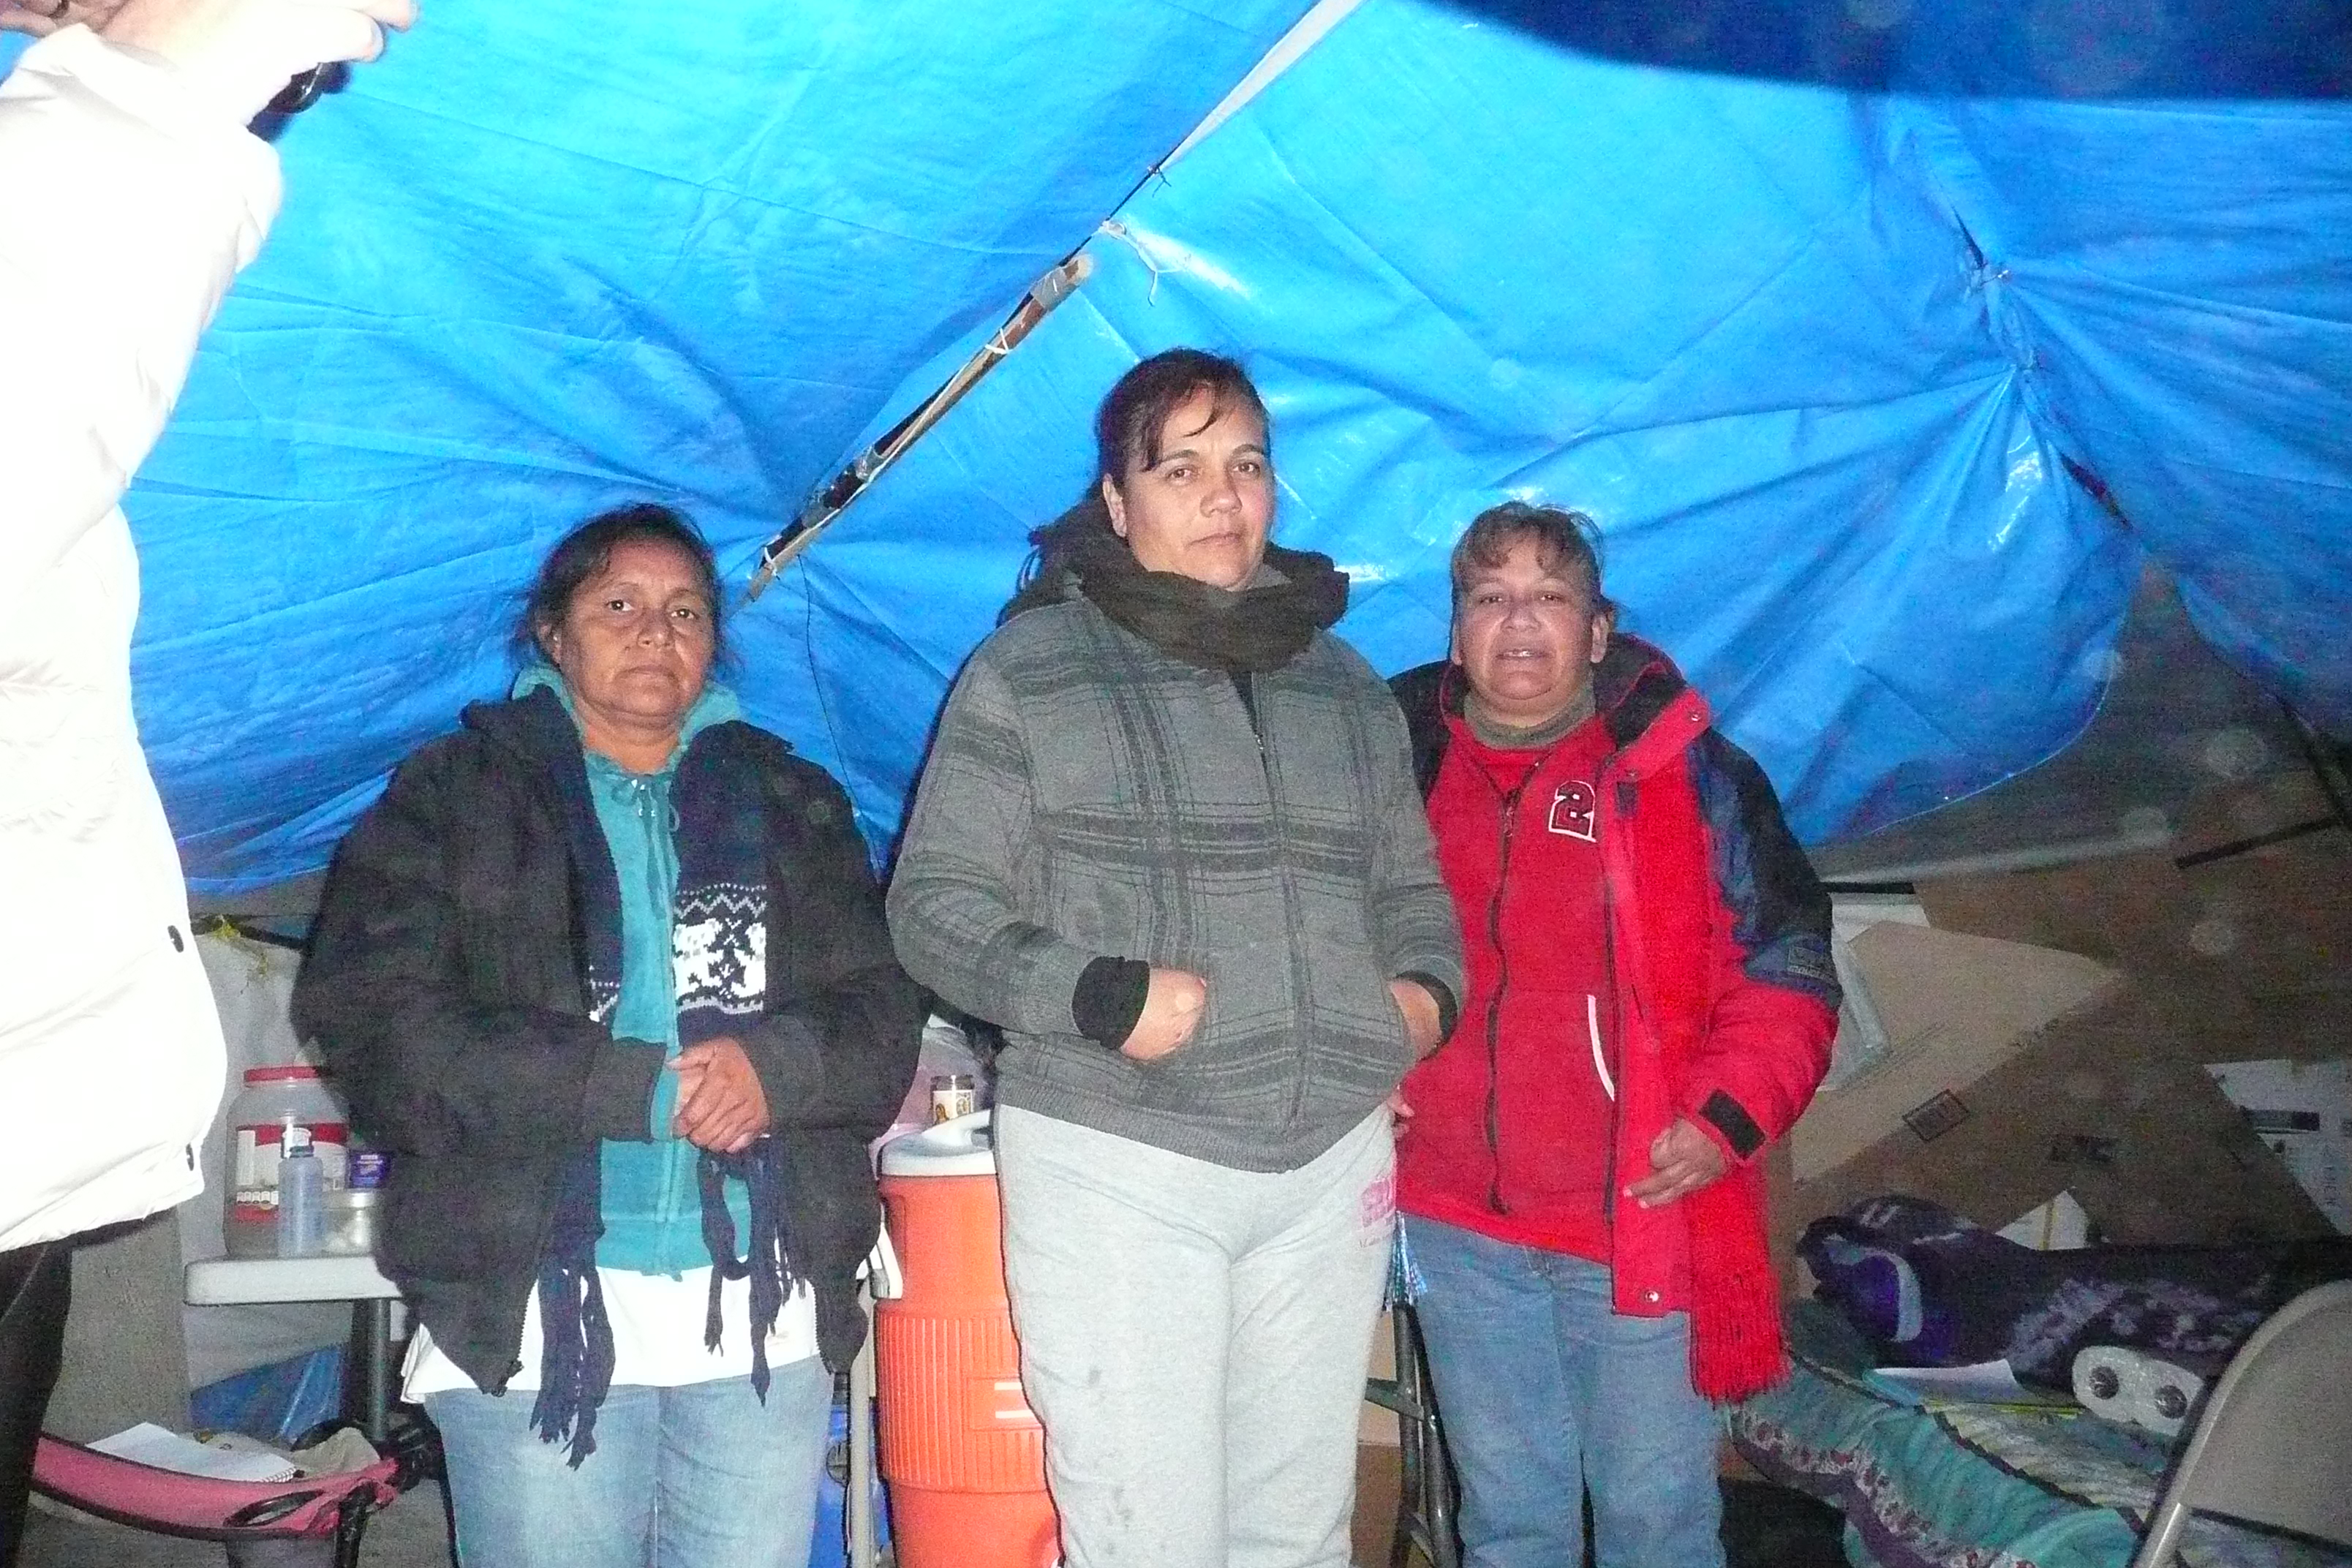 Striking Lexmark workers inside tents where they eat and sleep